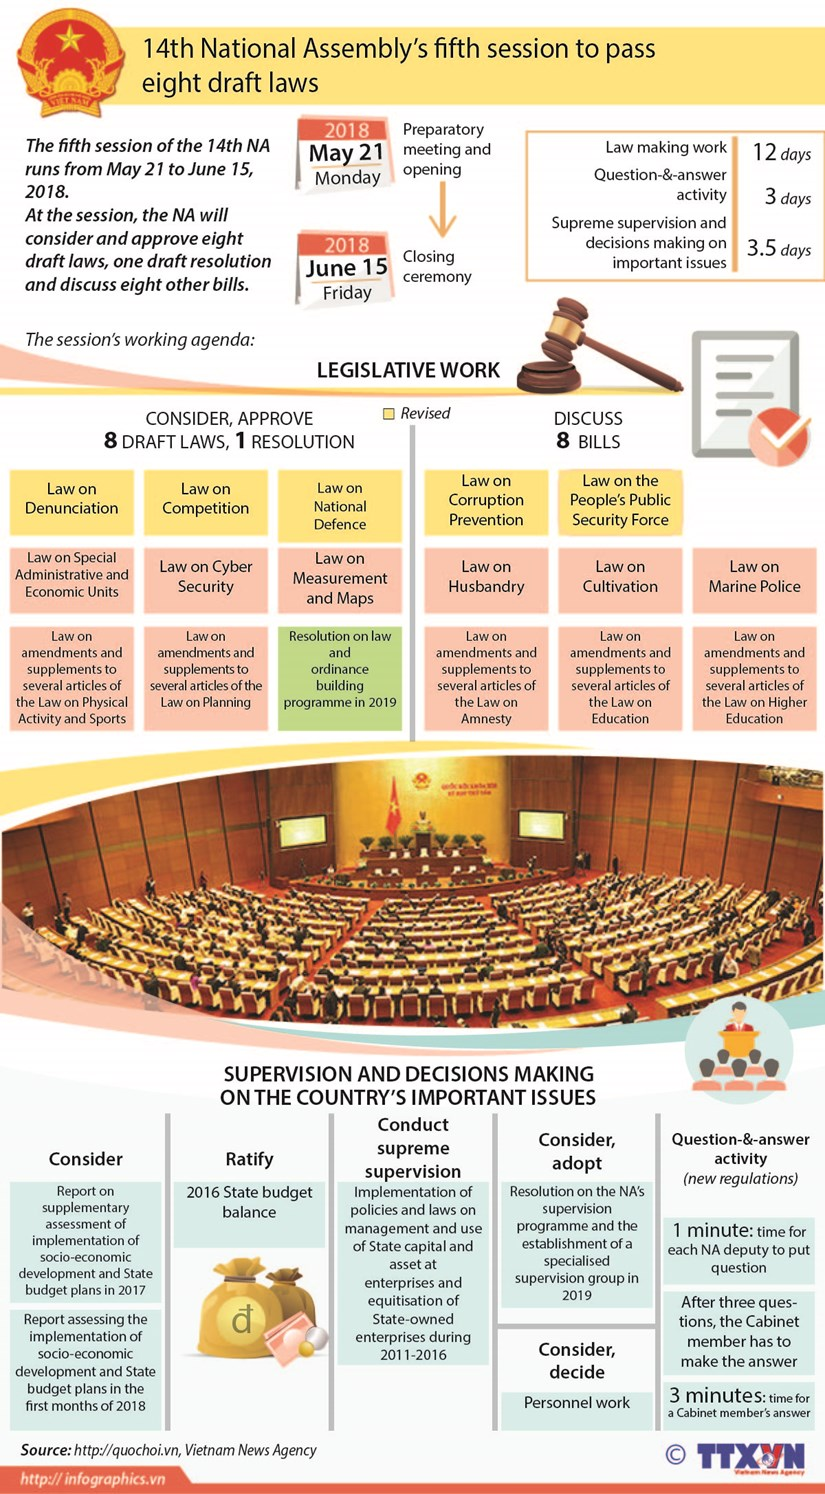 14th National Assembly's fifth session to pass eight draft laws hinh anh 1